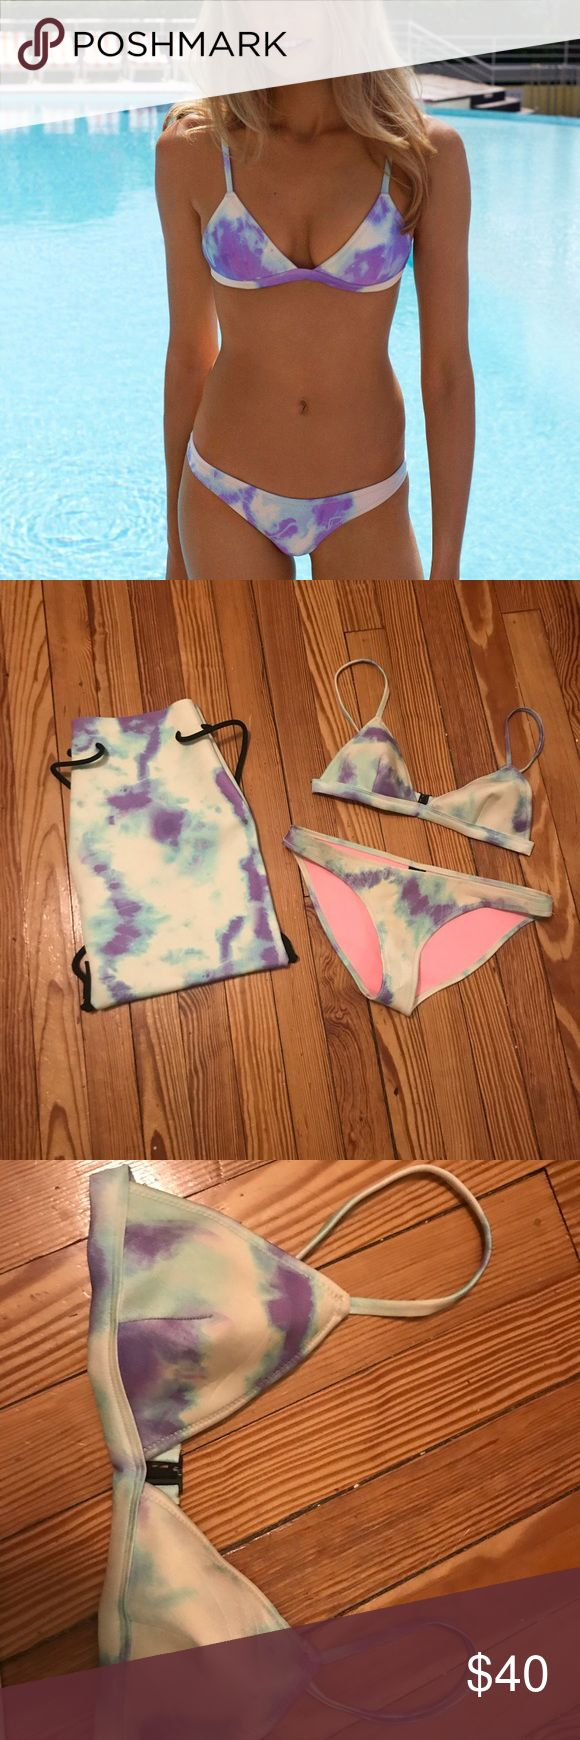 Triangl Bikini tie dye Triangl bikini Tie dye pattern - light purple and blue with white Bottom bikini cut - size large (fits a 6/8 bottom) Top - size small + (fits small c Cup) Comes with matching backpack 100% neoprene  Good condition triangl swimwear Swim Bikinis